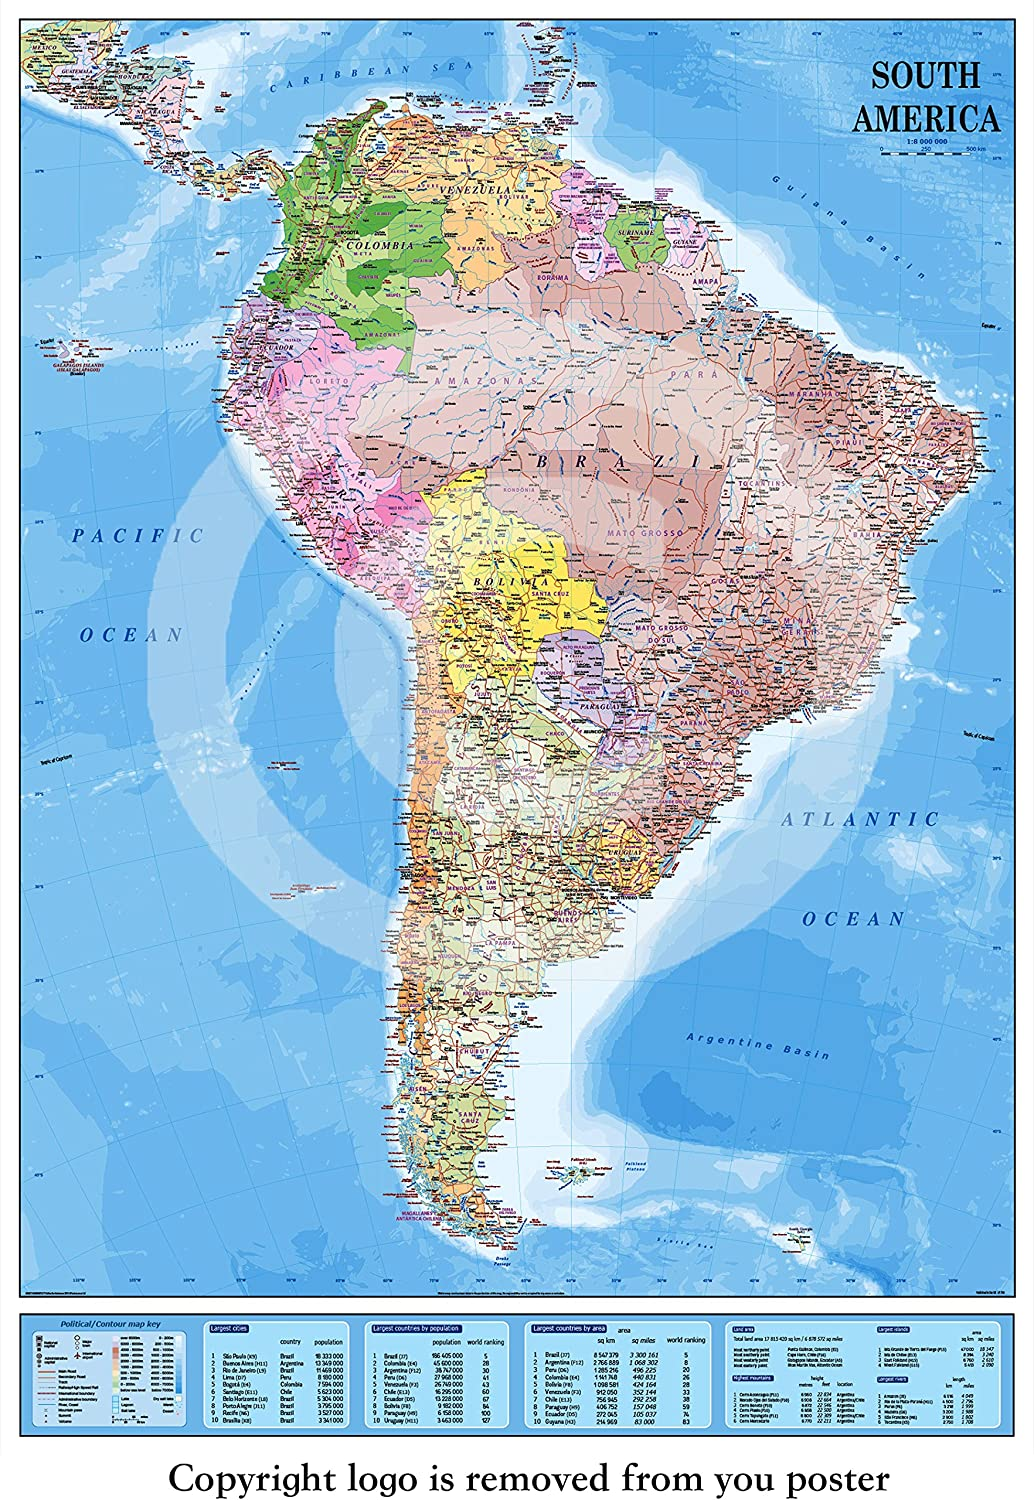 New 2015 laminated encapsulated map of south america poster new 2015 laminated encapsulated map of south america poster measures 36 x 24 inches 915 x 61 cm amazon kitchen home gumiabroncs Choice Image